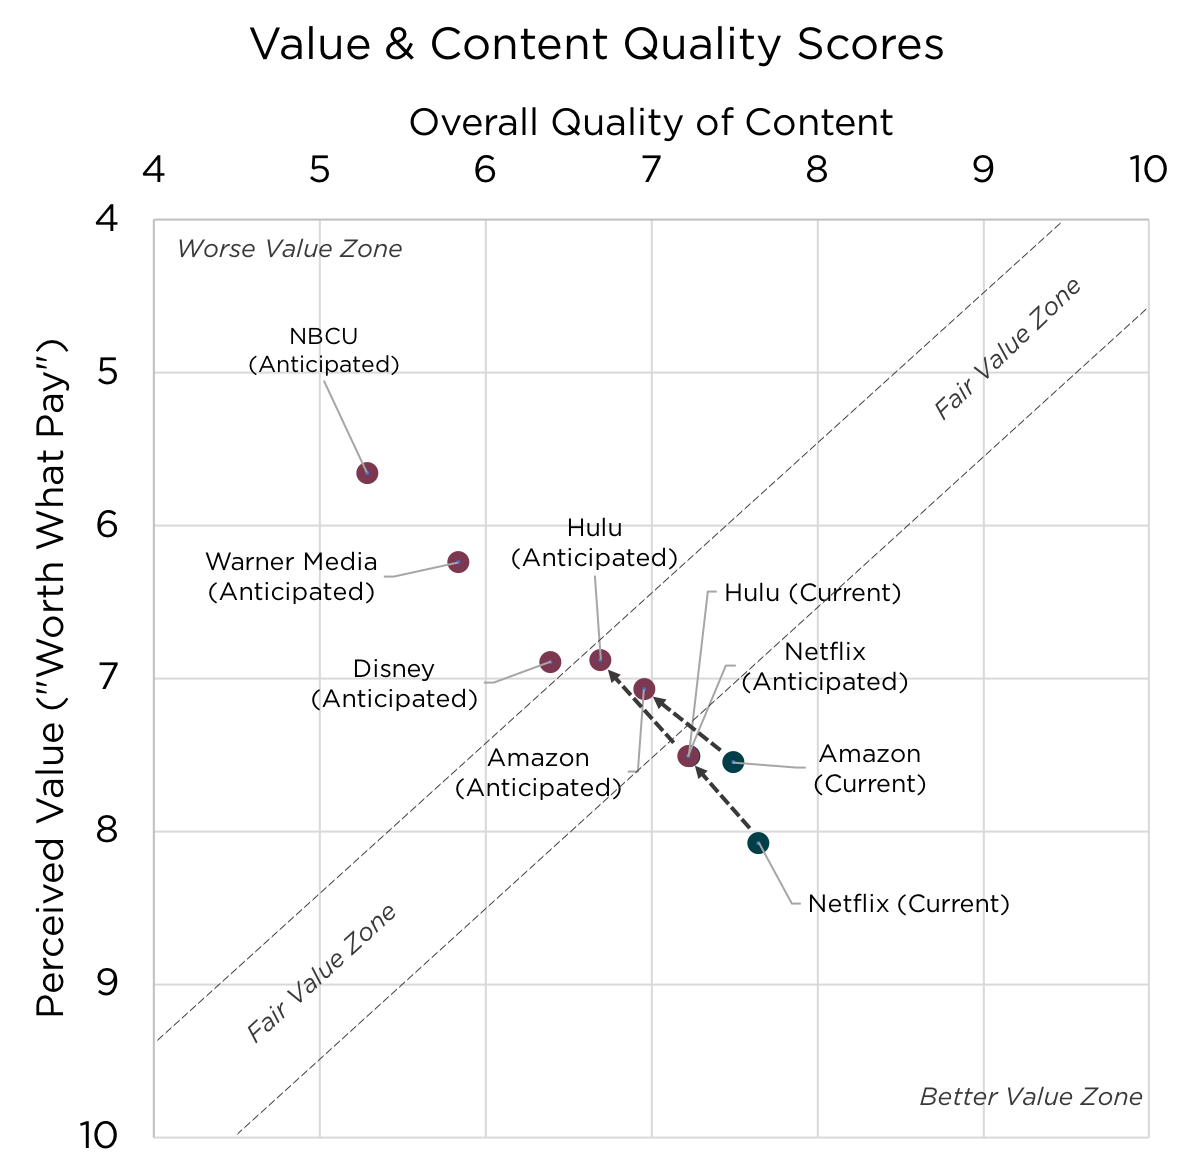 """Note: Value scores range from 1-10, where 10=""""Totally Worth It"""" and 1=""""Not at all worth it"""". Content Quality scores range from 1-10, where 10=""""Excellent"""" and 1=""""Poor""""."""